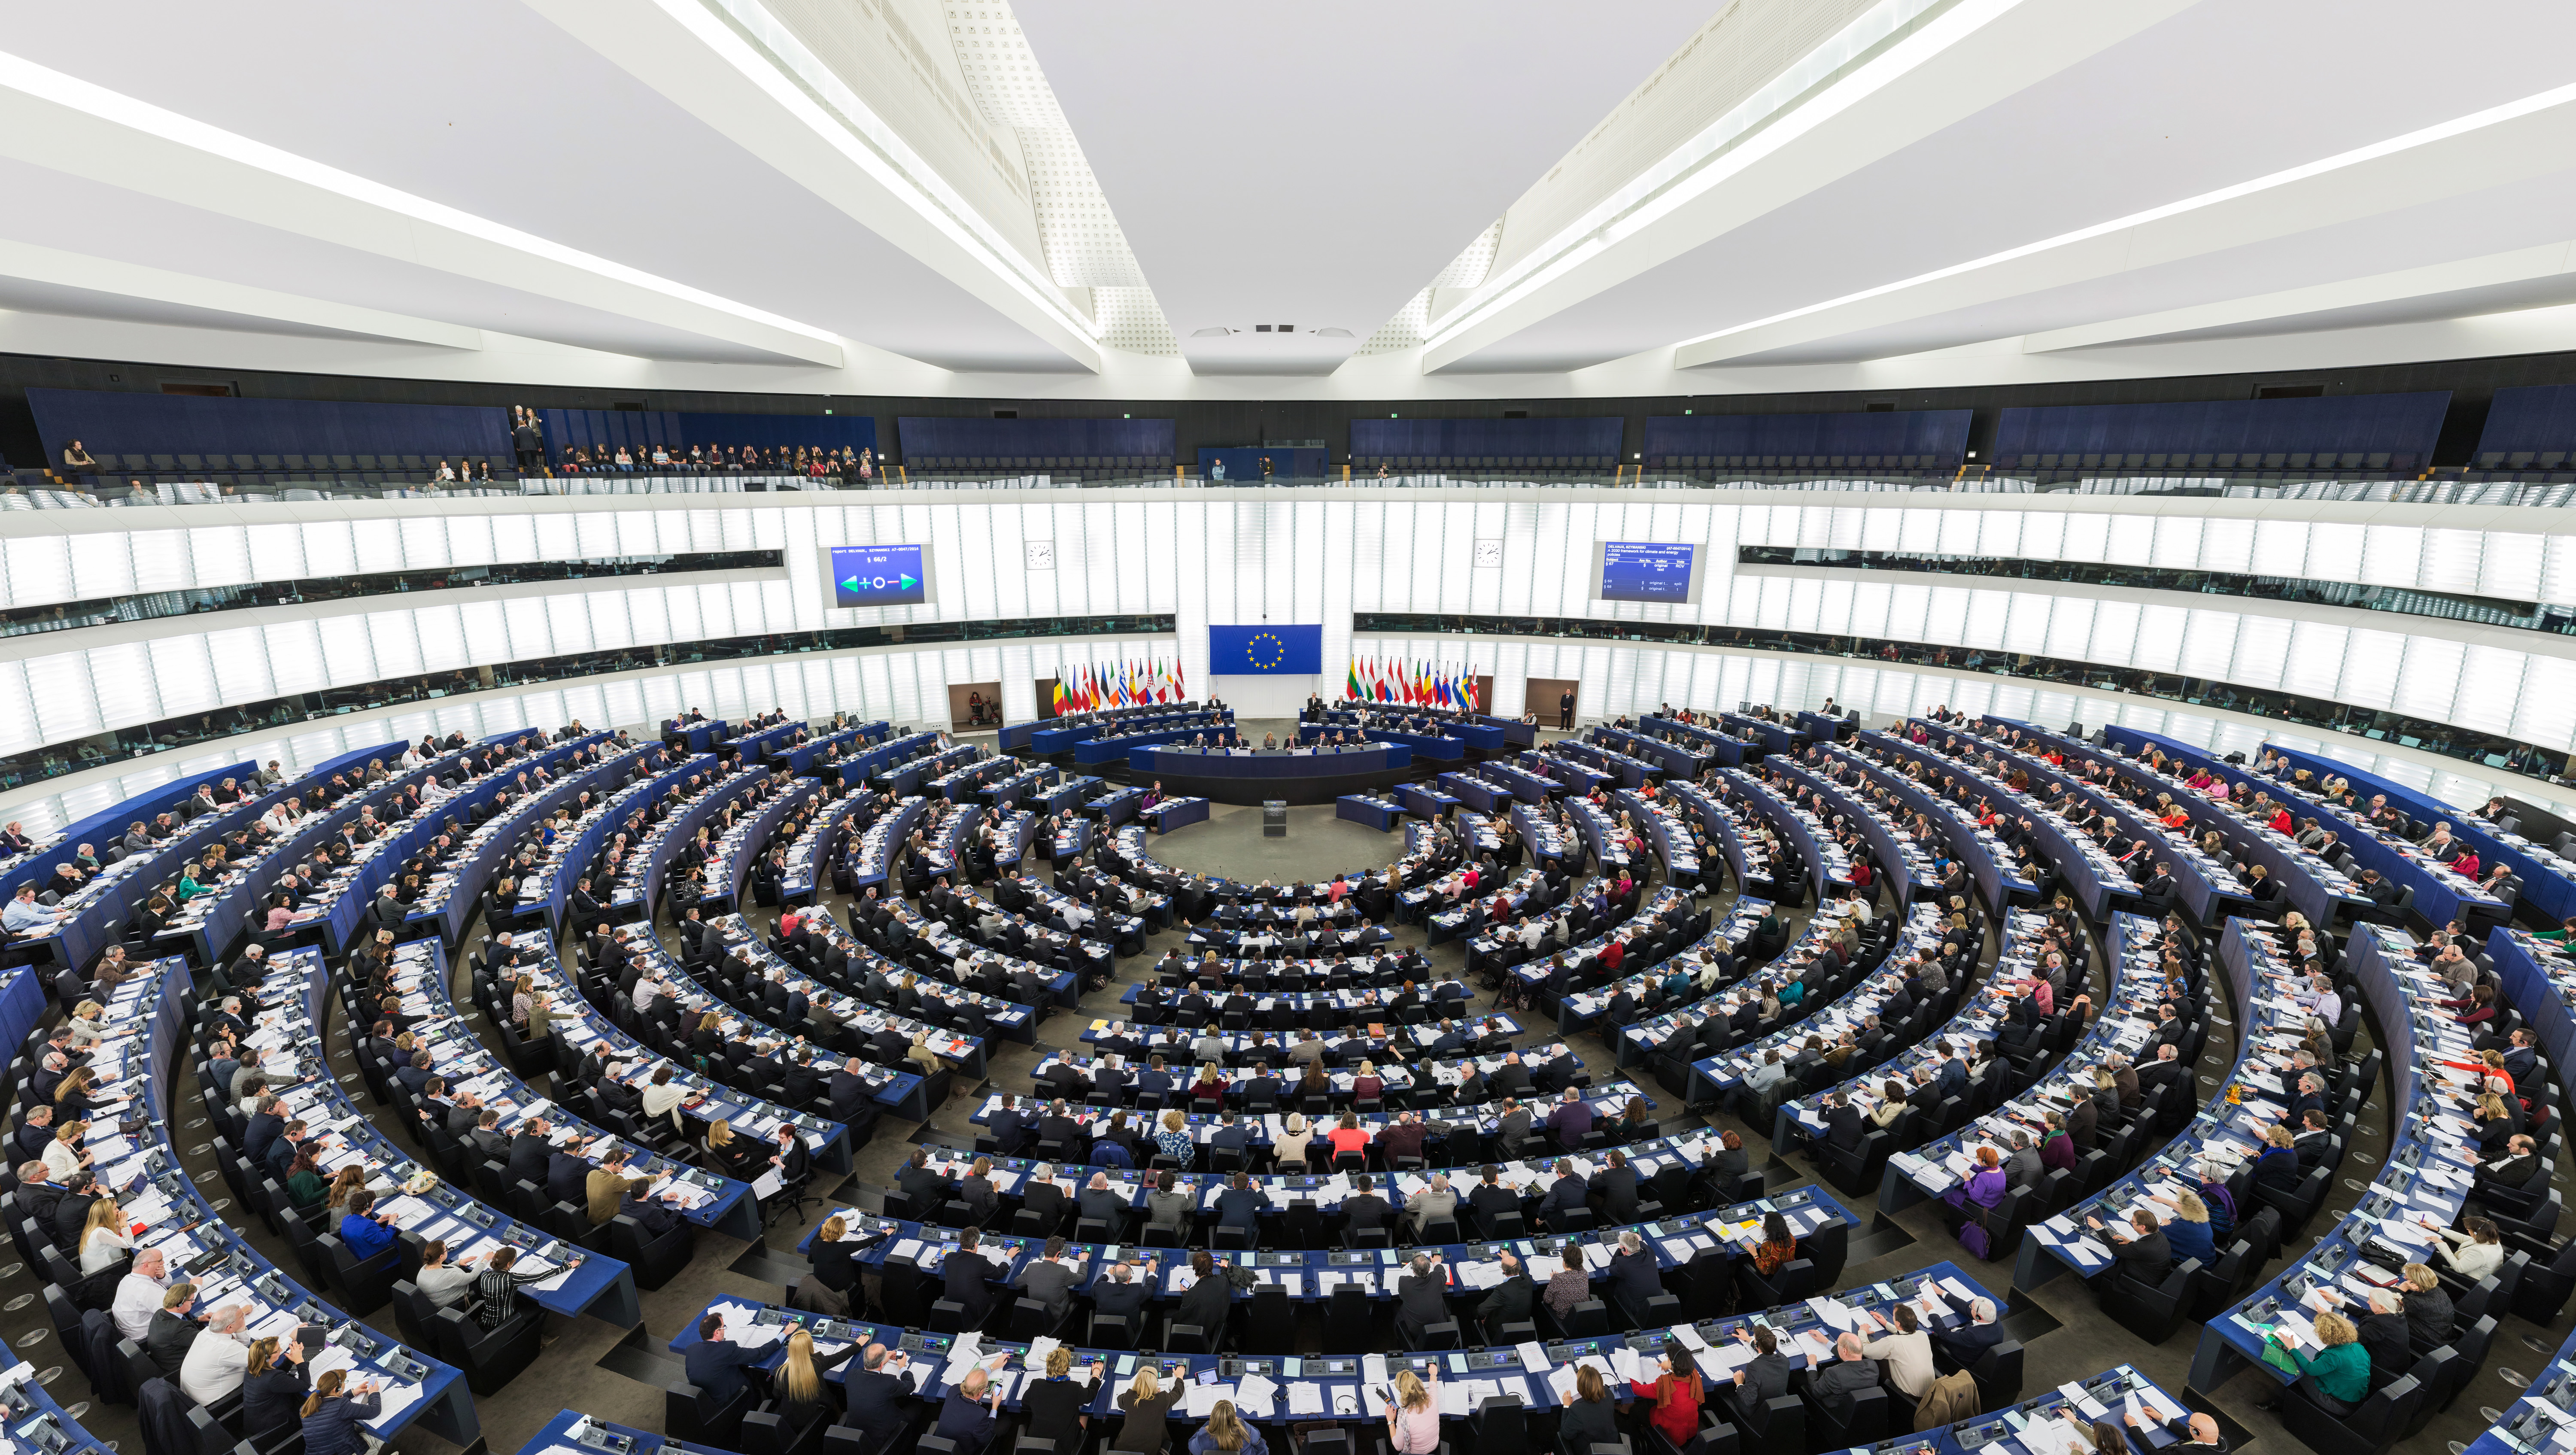 Europe needs a decisive and undoubted injection of real European democracy, argues Diogo Pinto.